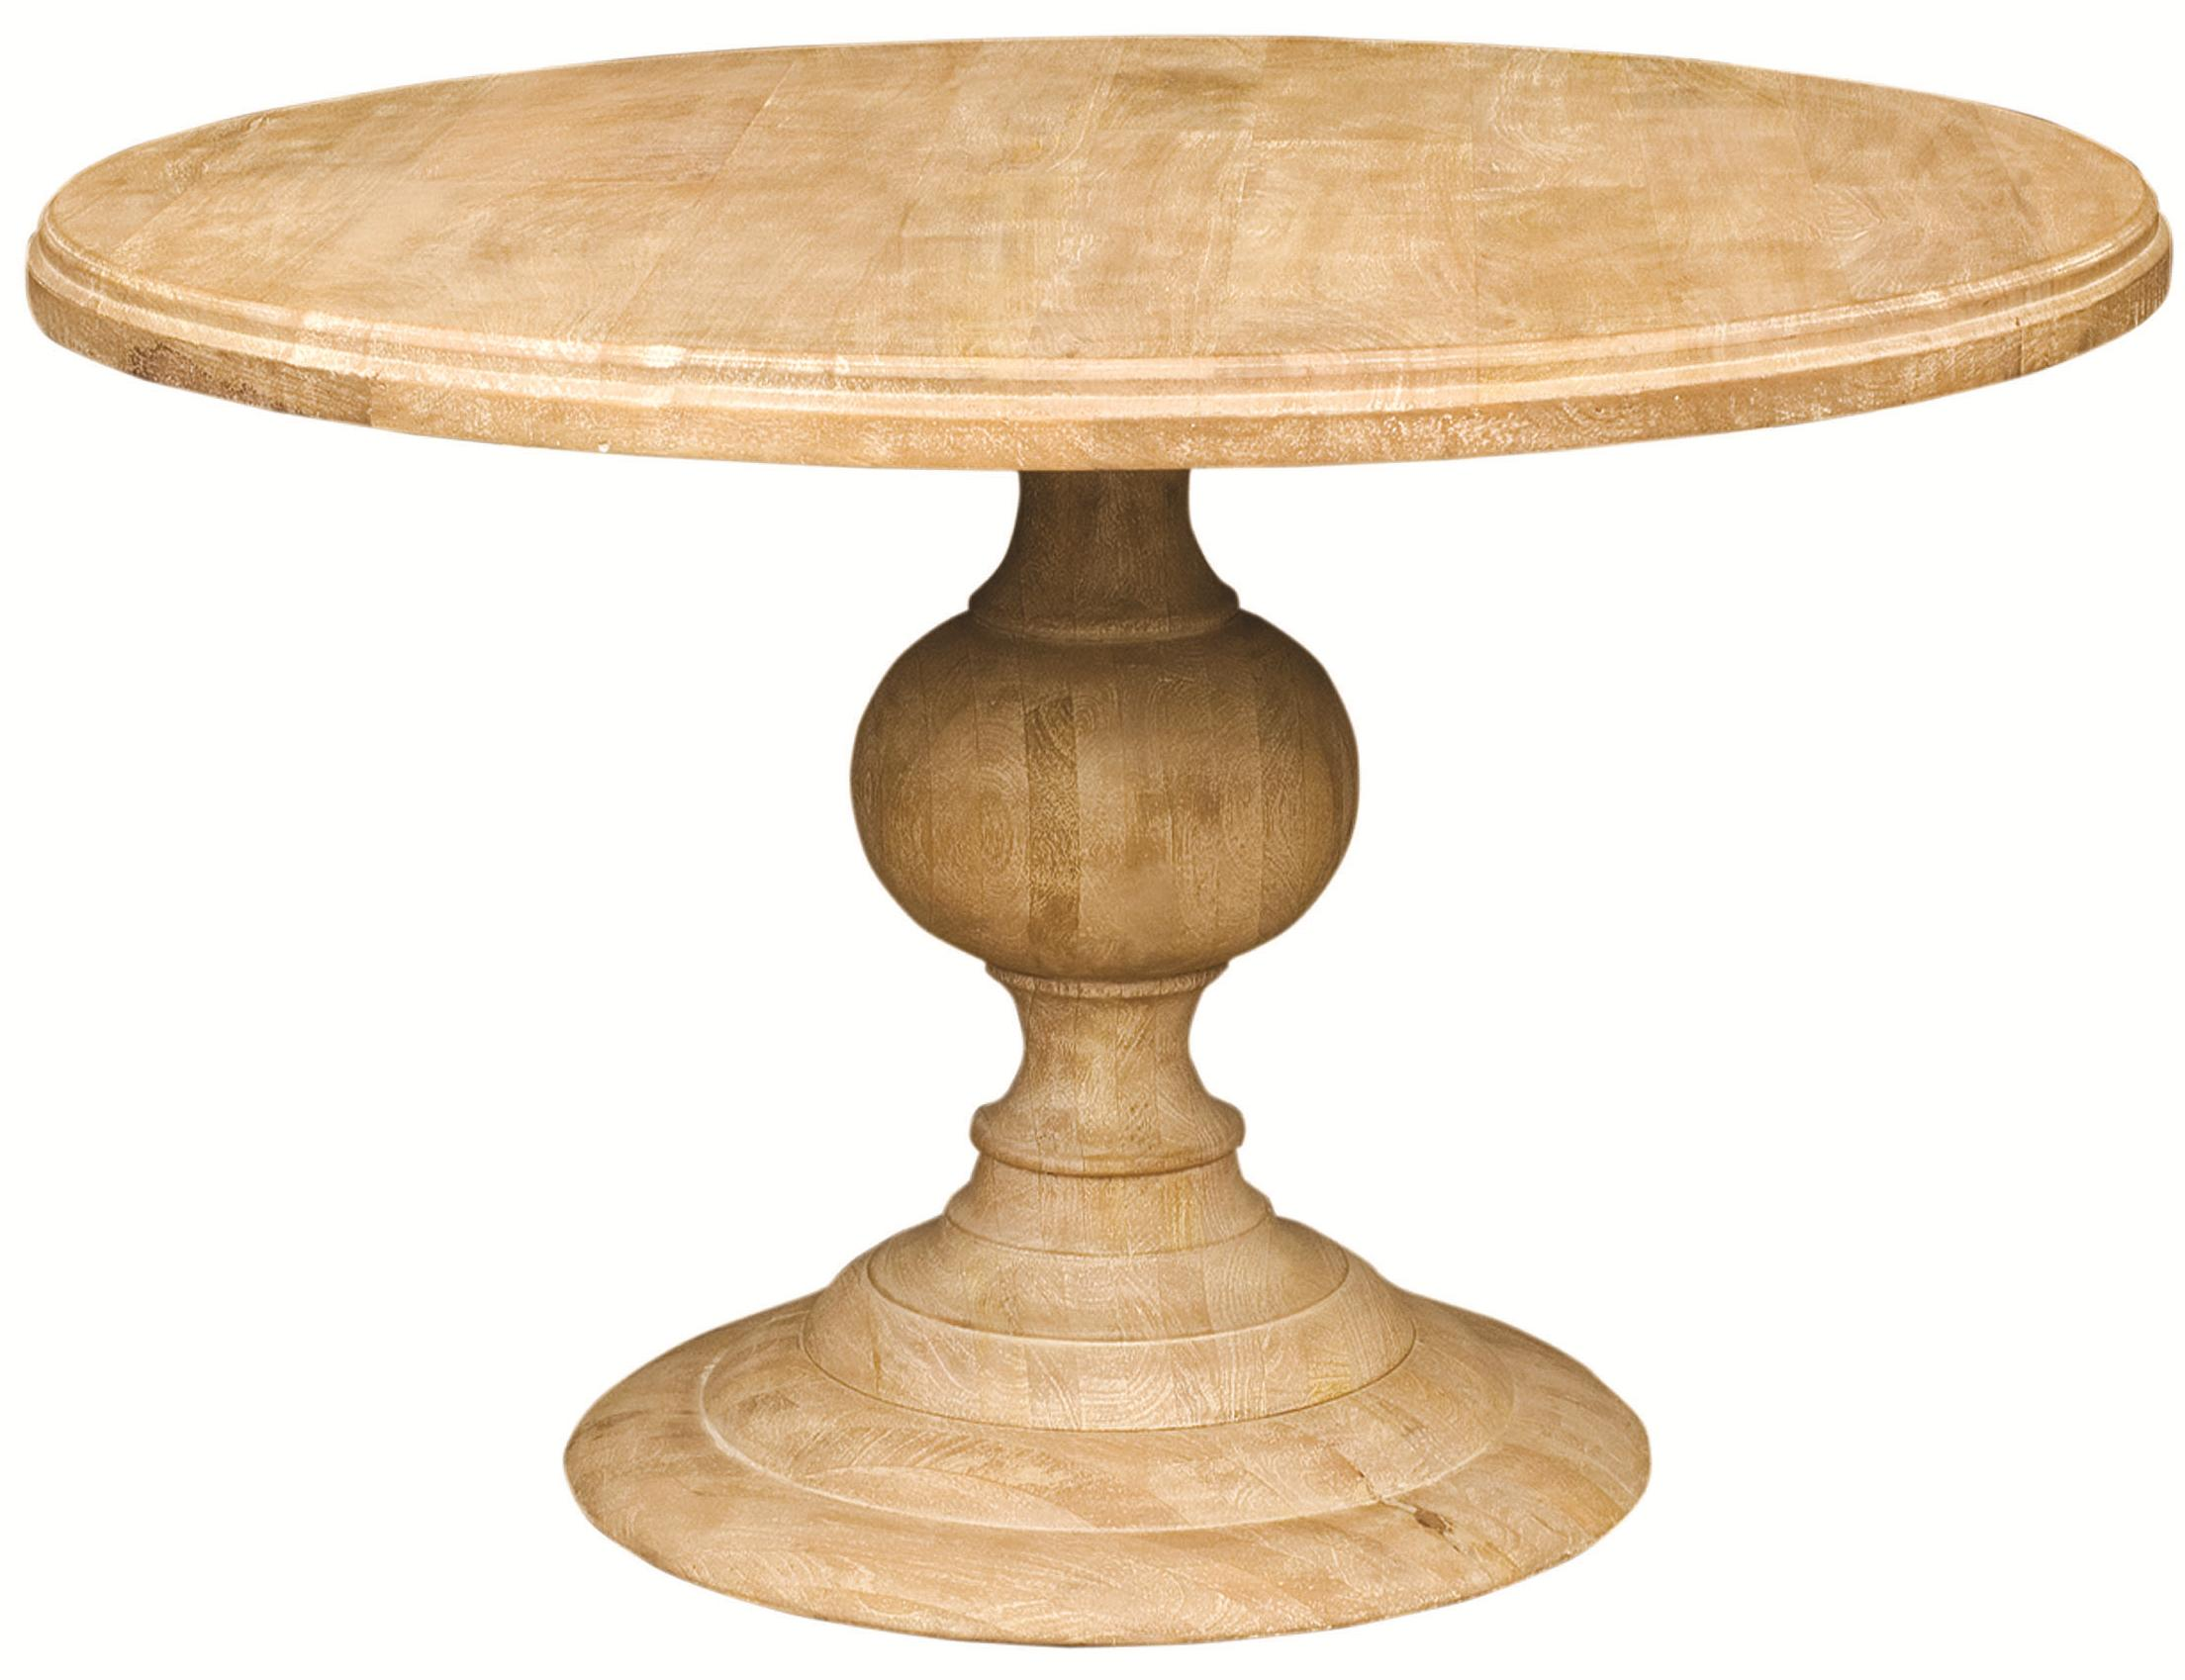 Four Hands Magnolia Dining Table - Item Number: IMGN-48R